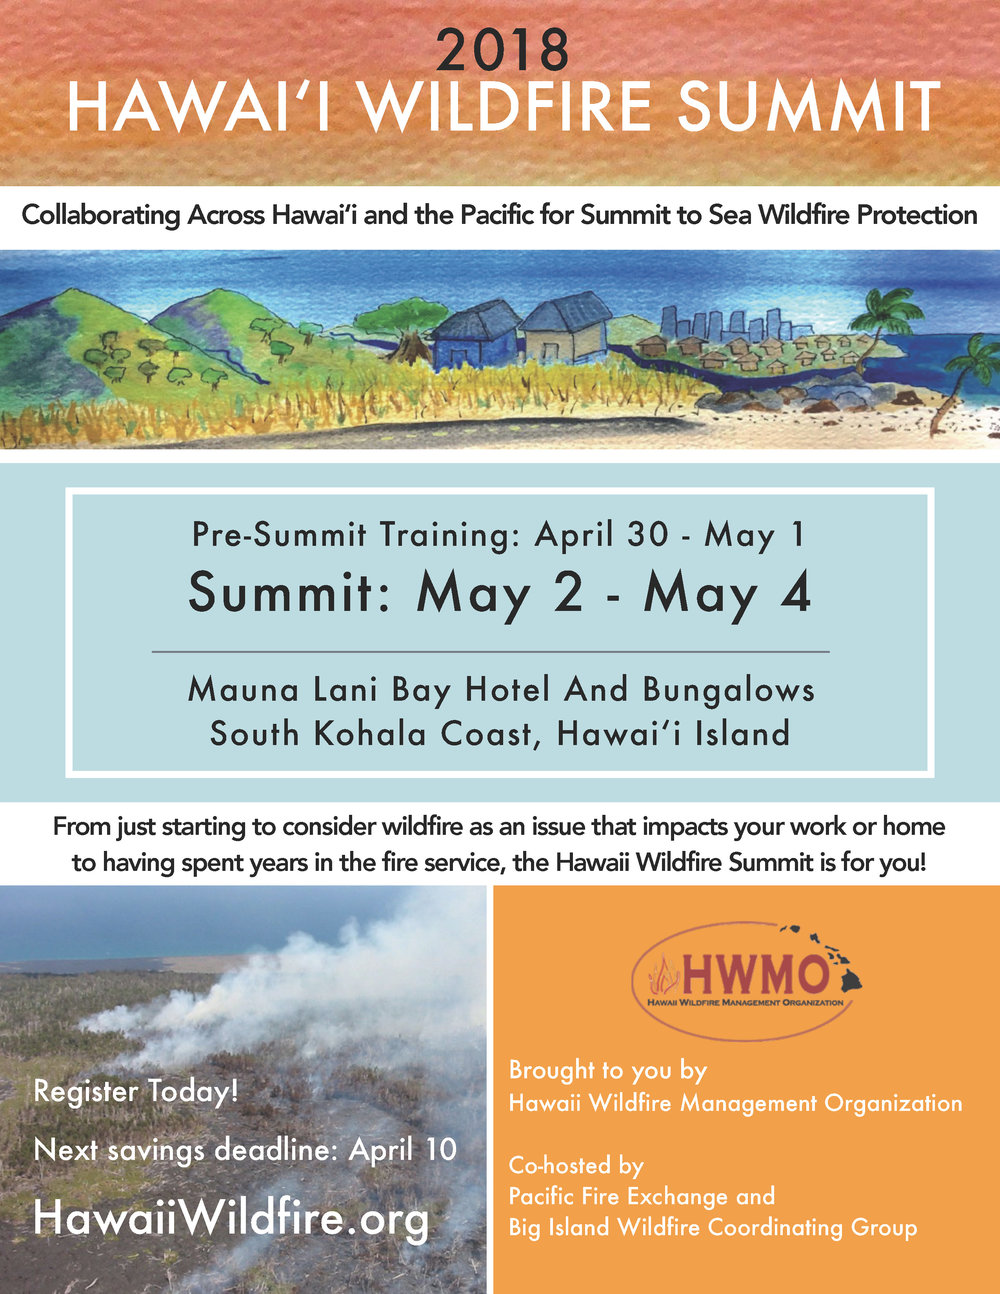 2018_3_16_Hawaii Wildfire Summit_Schedule_at_a_glance_FINAL copy_Page_1.jpg